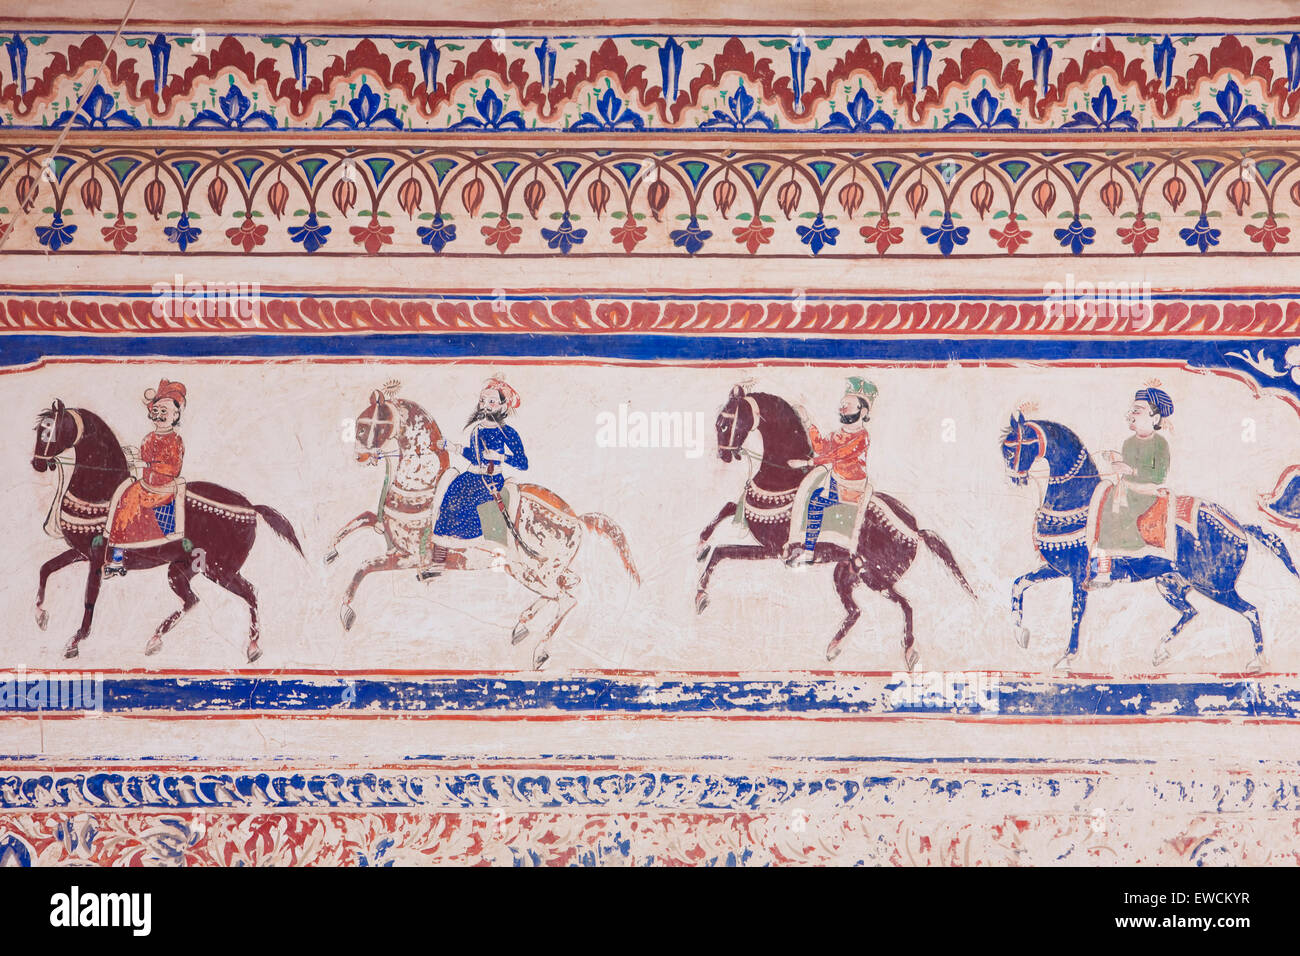 Rajput riders on horseback. Fresco in a private mansion (Haveli), Nawalgarh, Rajasthan, Indien Stock Photo